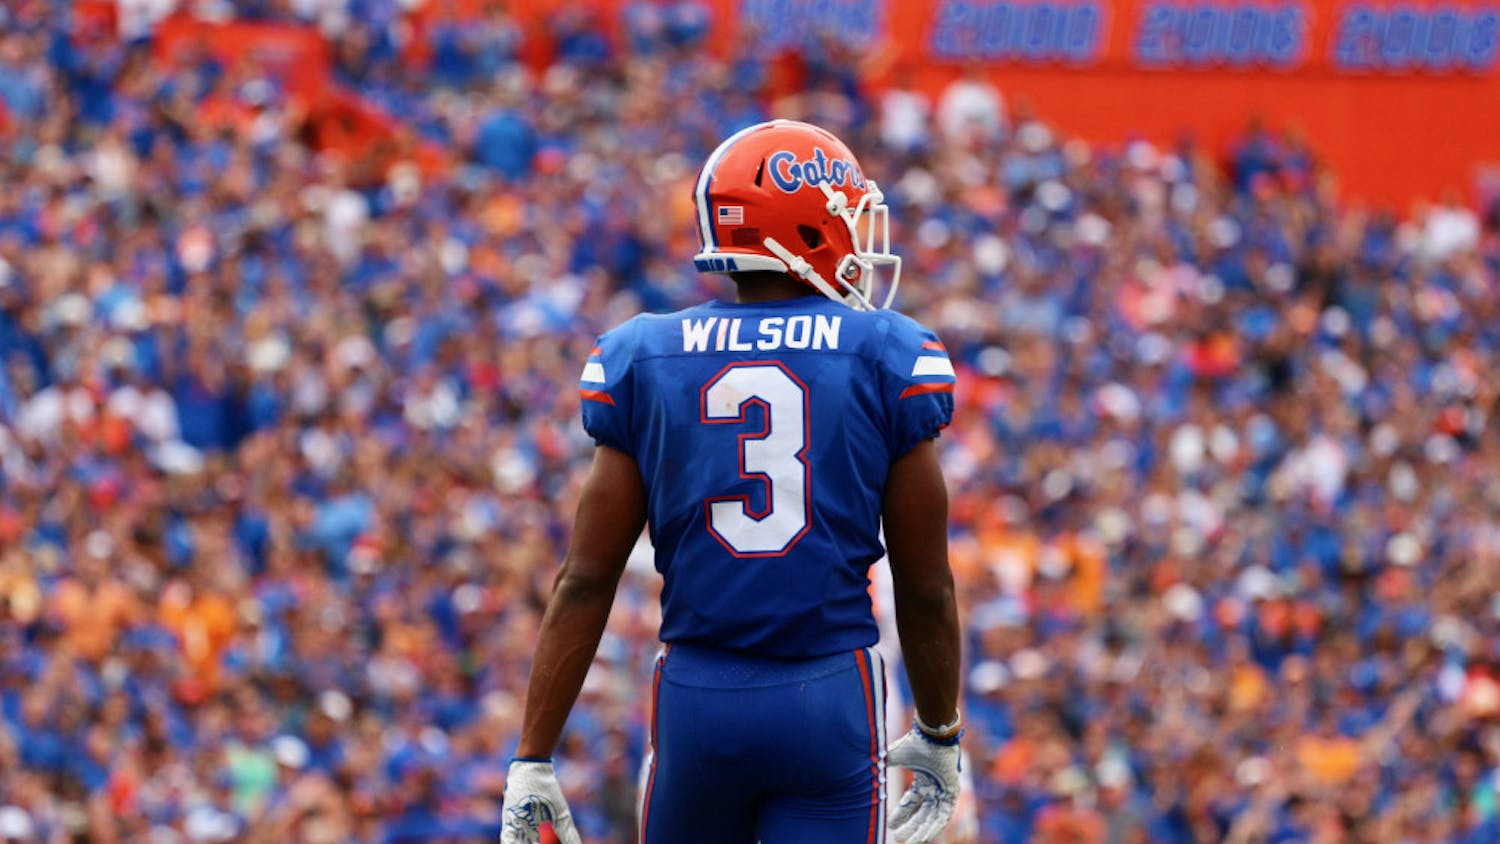 UF cornerback Marco Wilson stands on the field at Ben Hill Griffin Stadium in 2017.